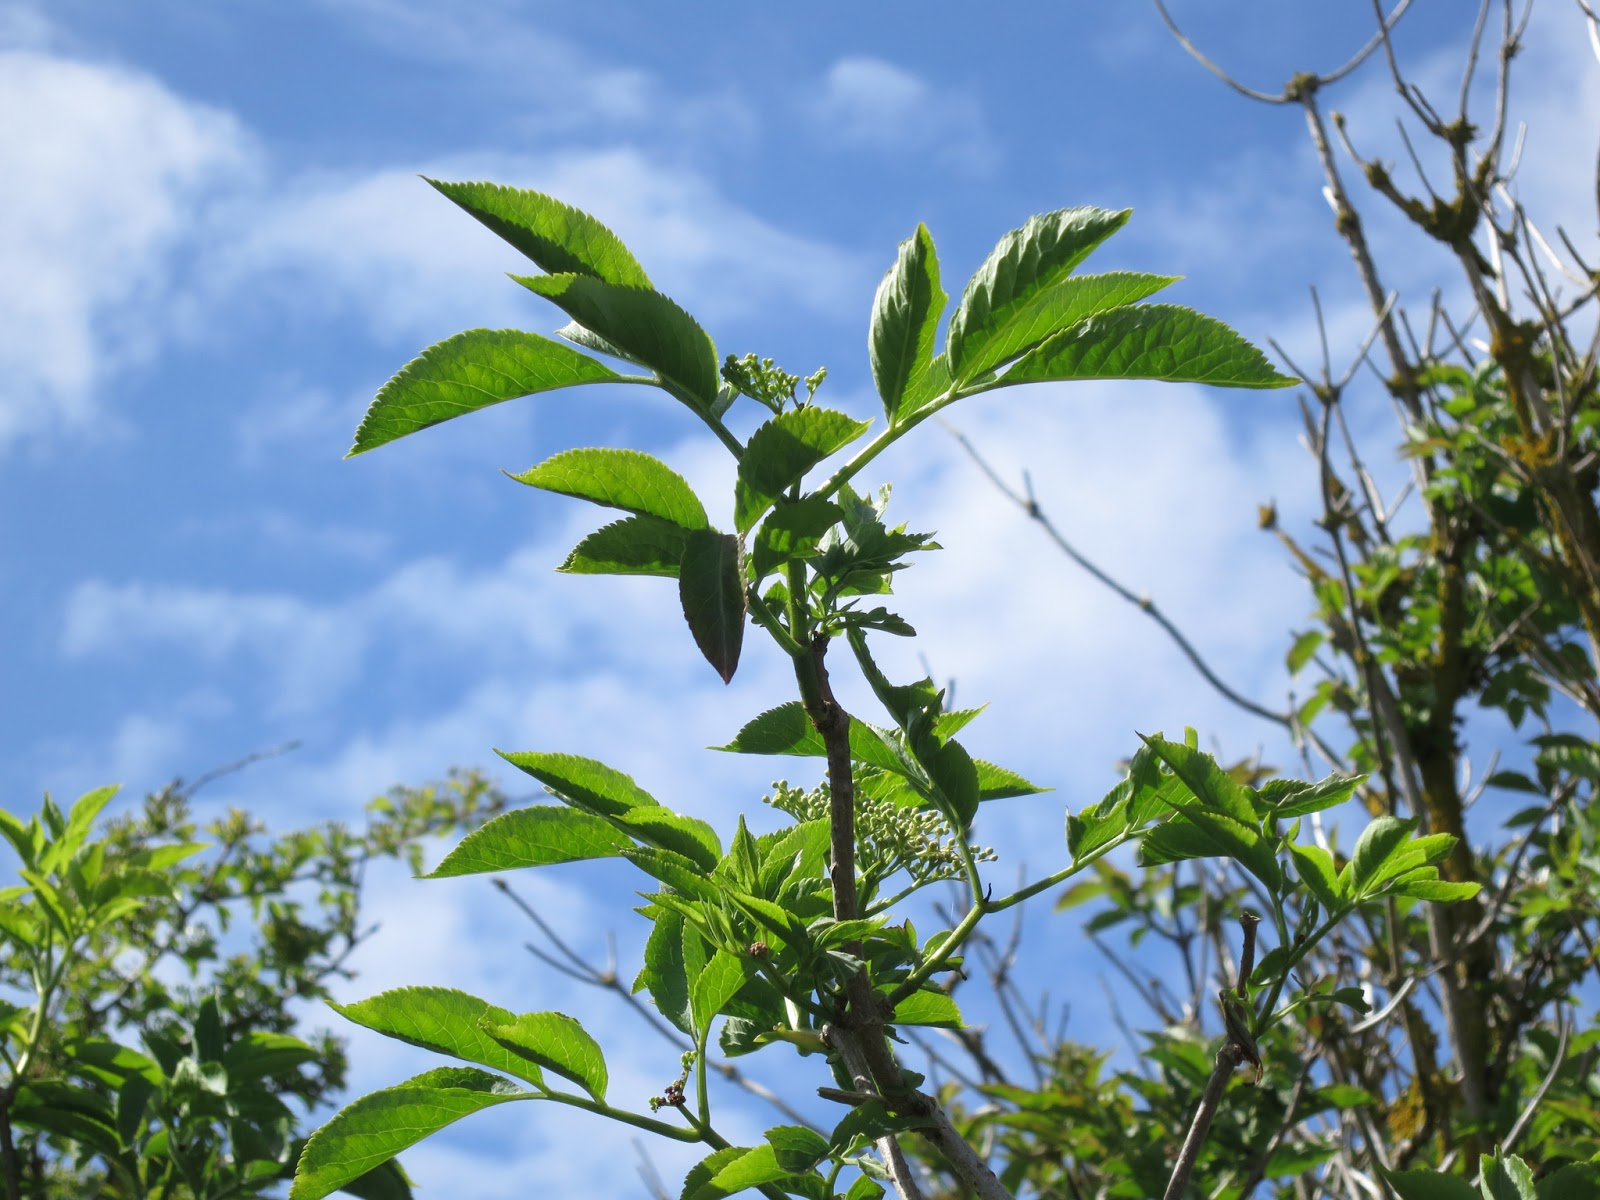 Elderberry leaves and flower buds against blue sky with light clouds